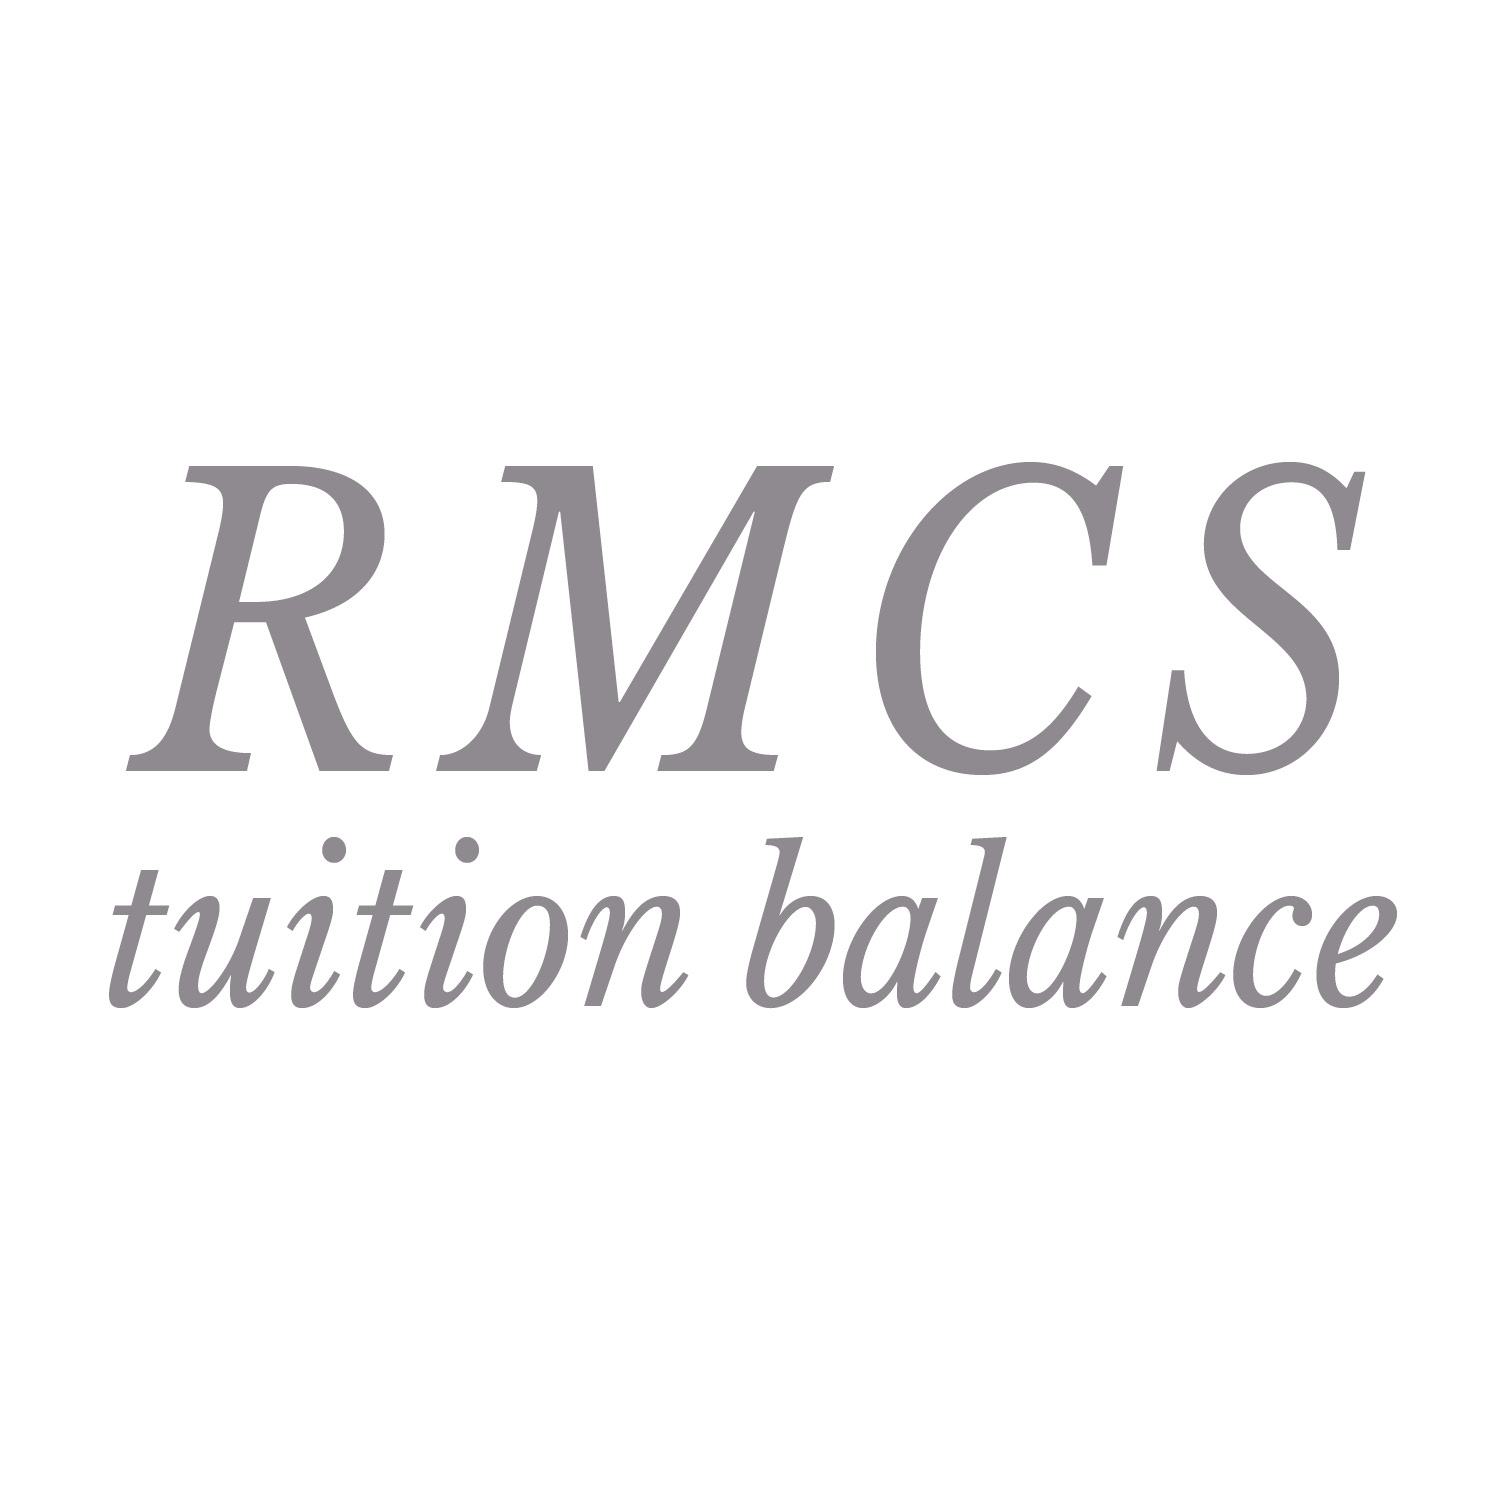 Pay towards your tuition balance by clicking the button below!